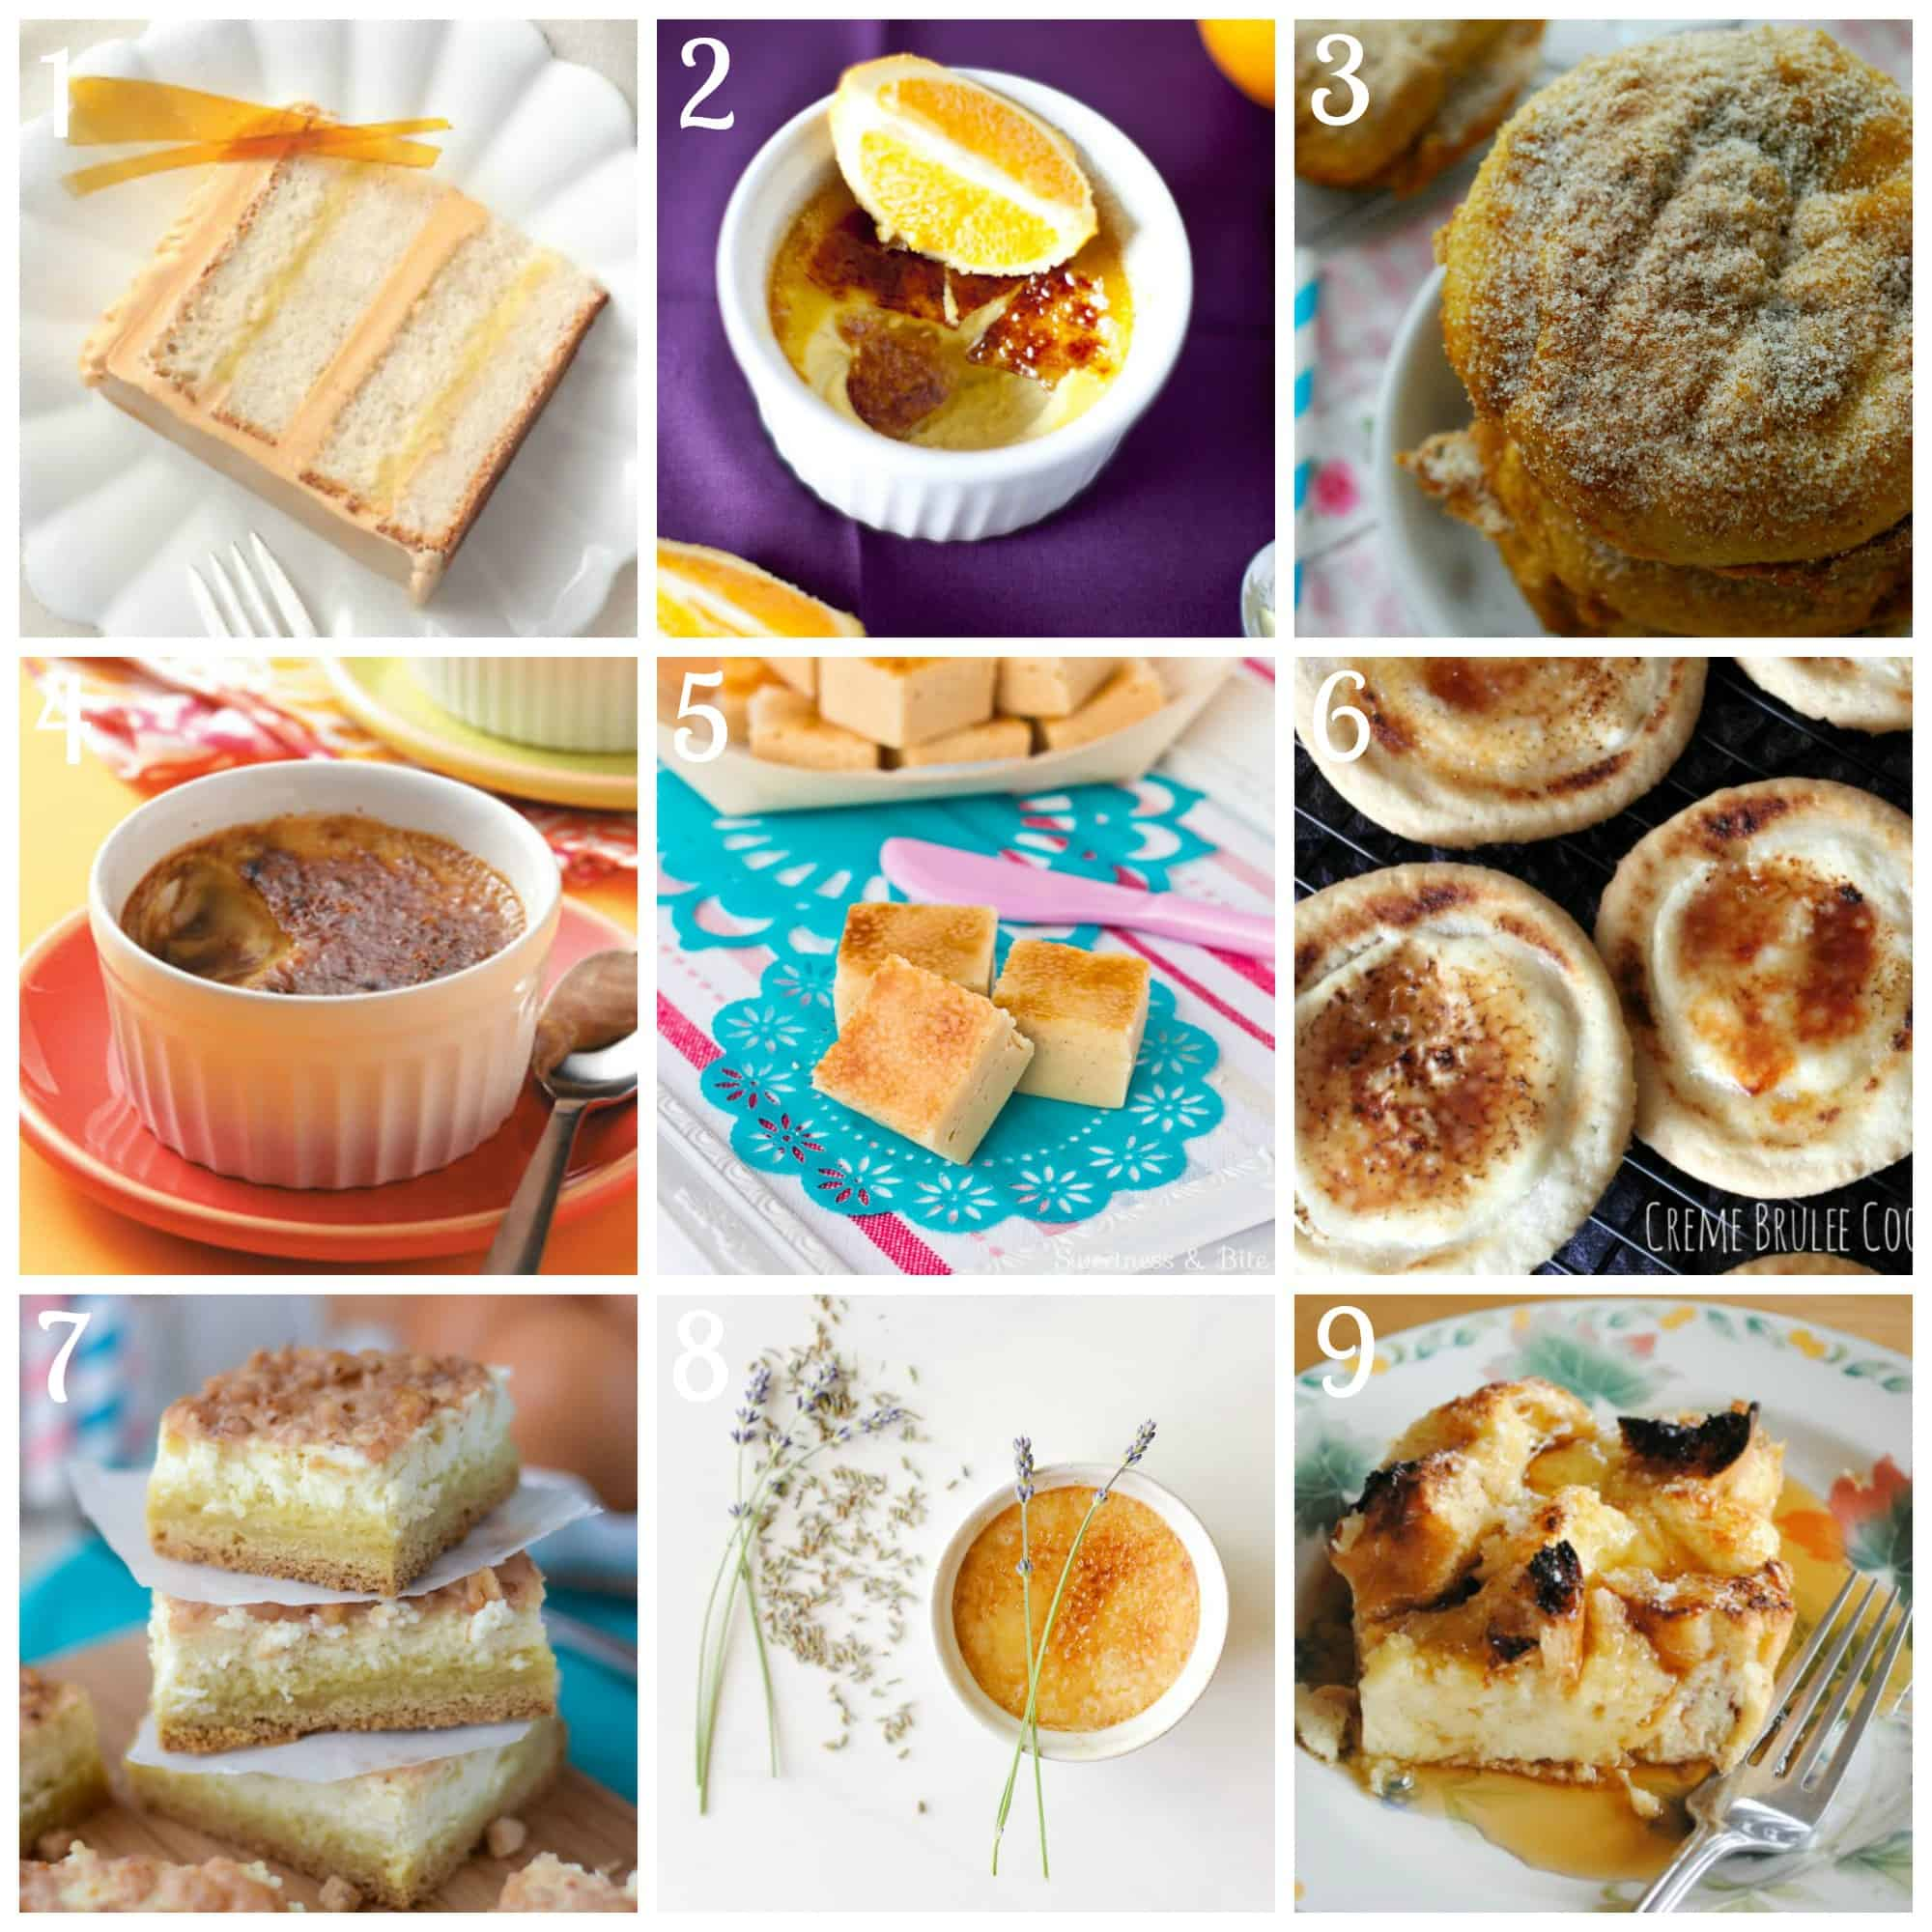 Best creme brûlée dishes